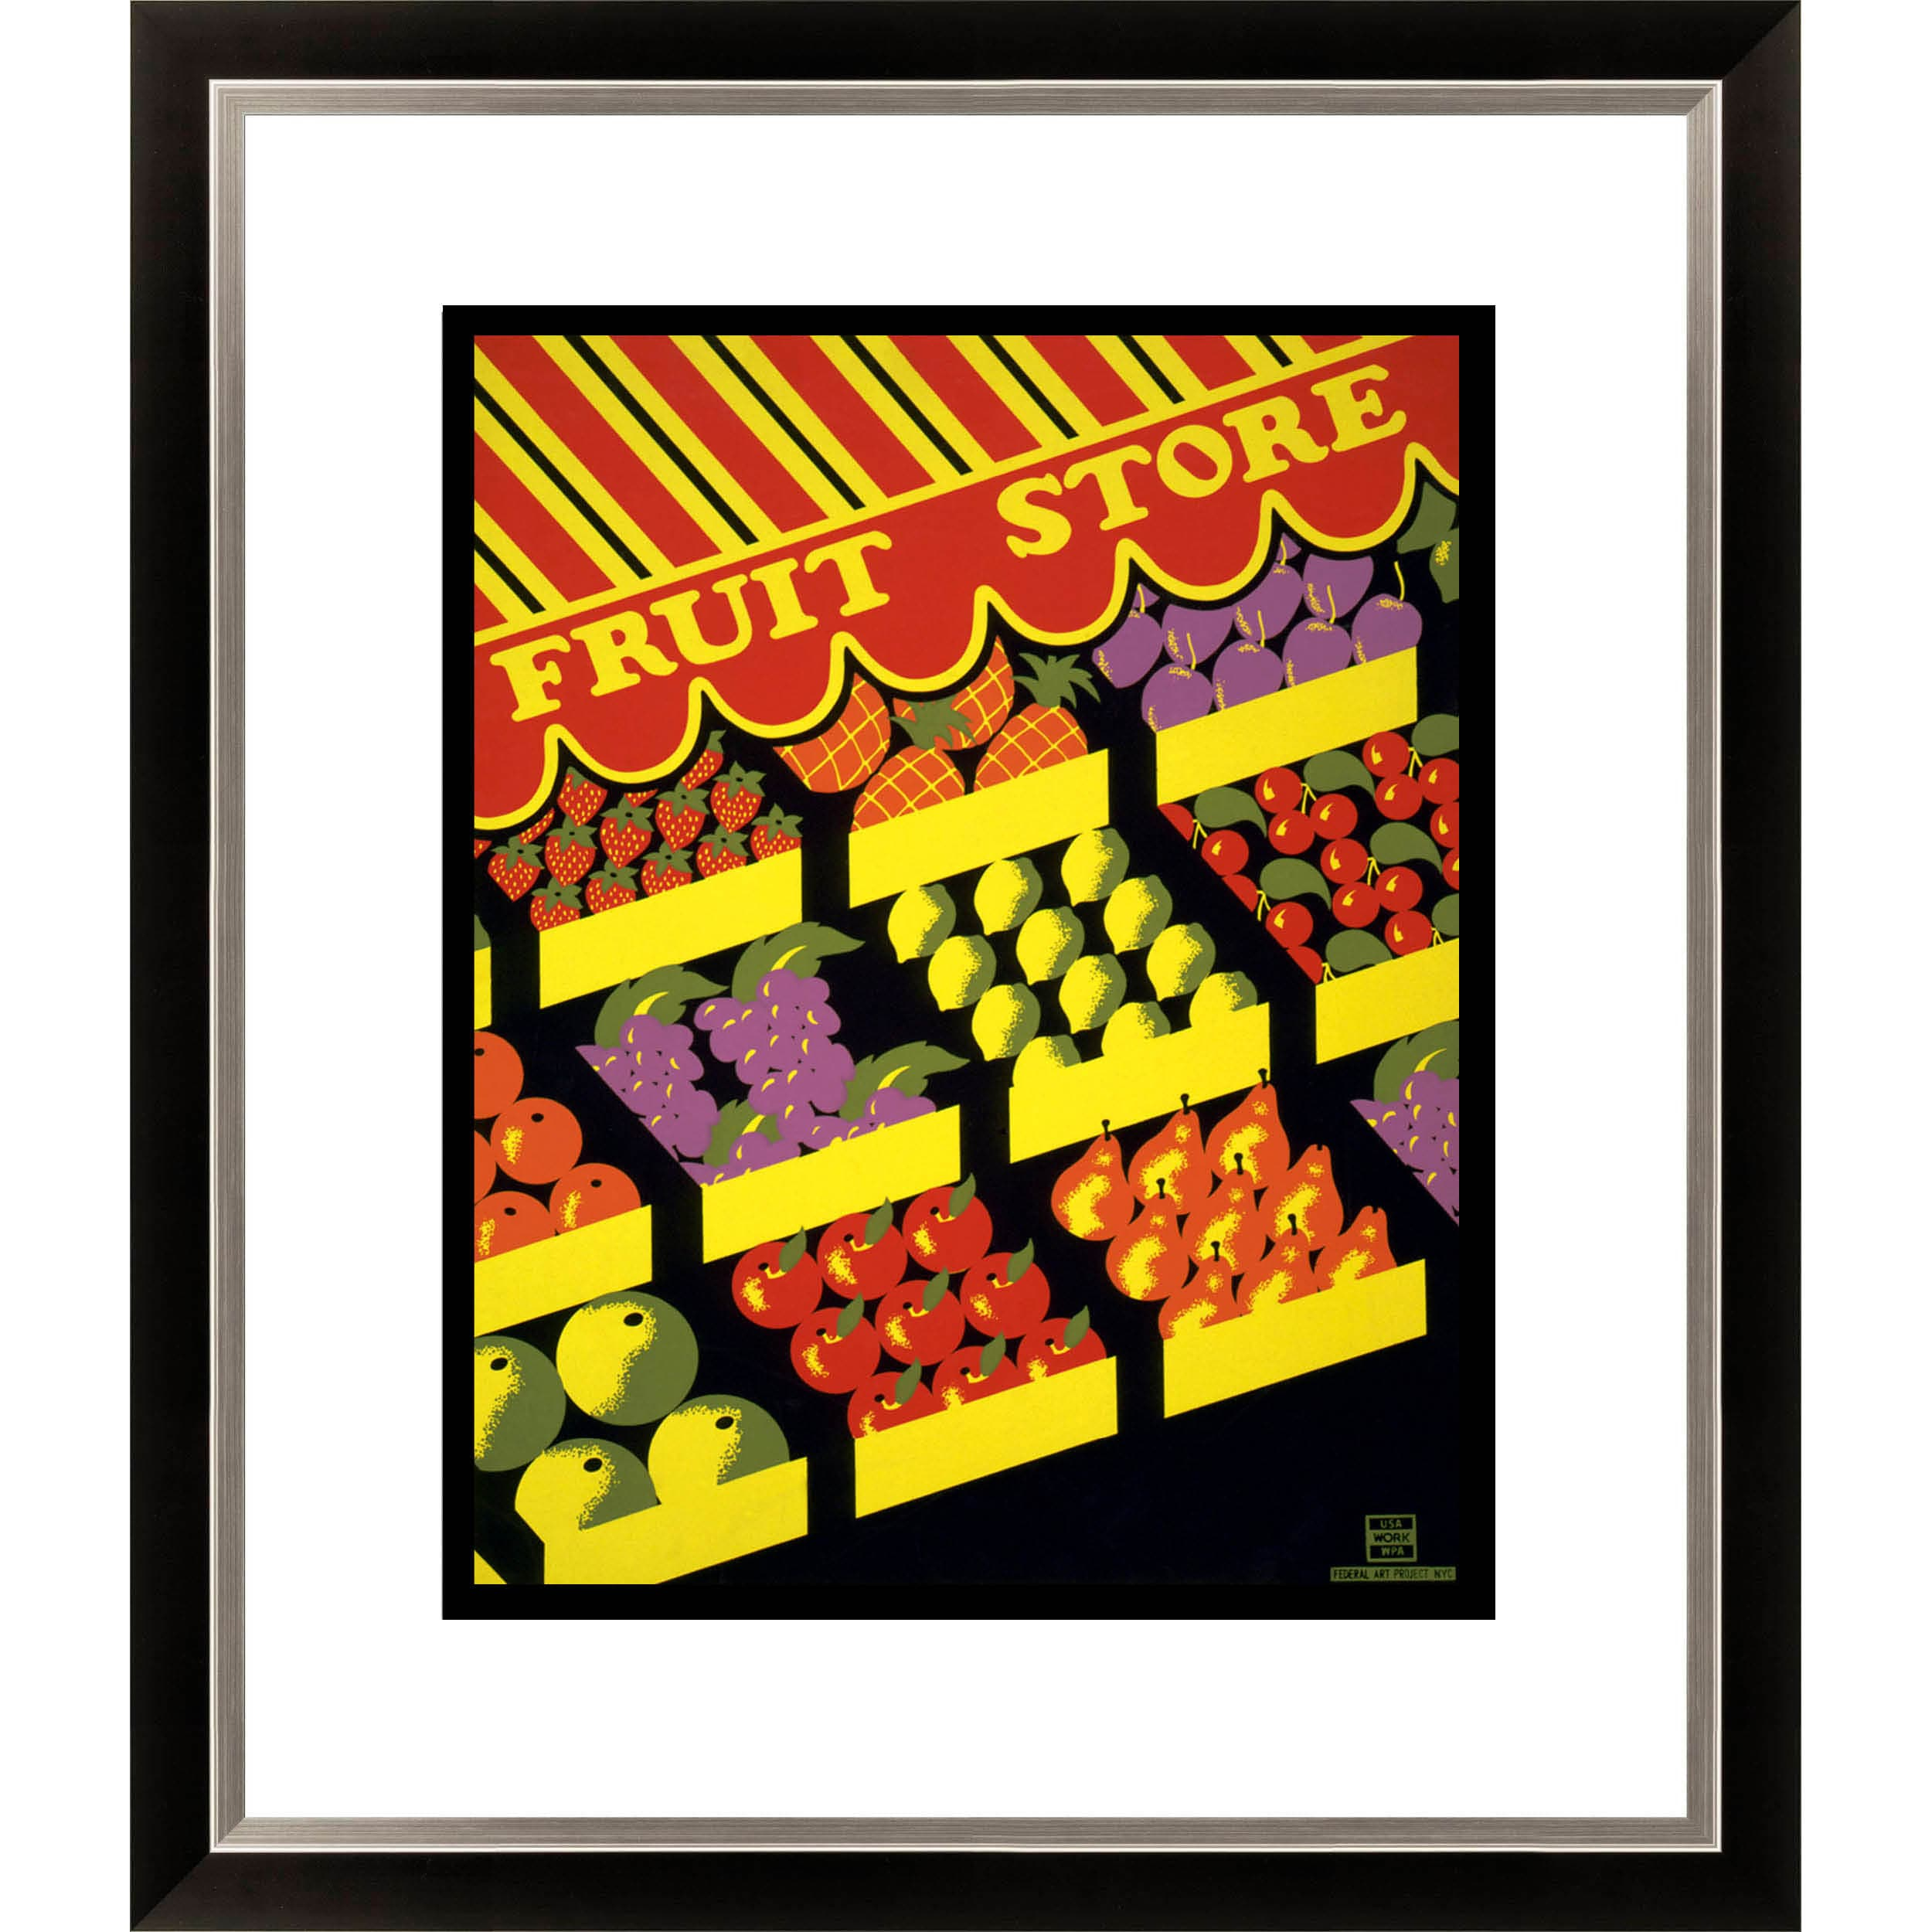 Gallery Direct Fruit Store Framed Limited Edition Giclee Art - Thumbnail 0